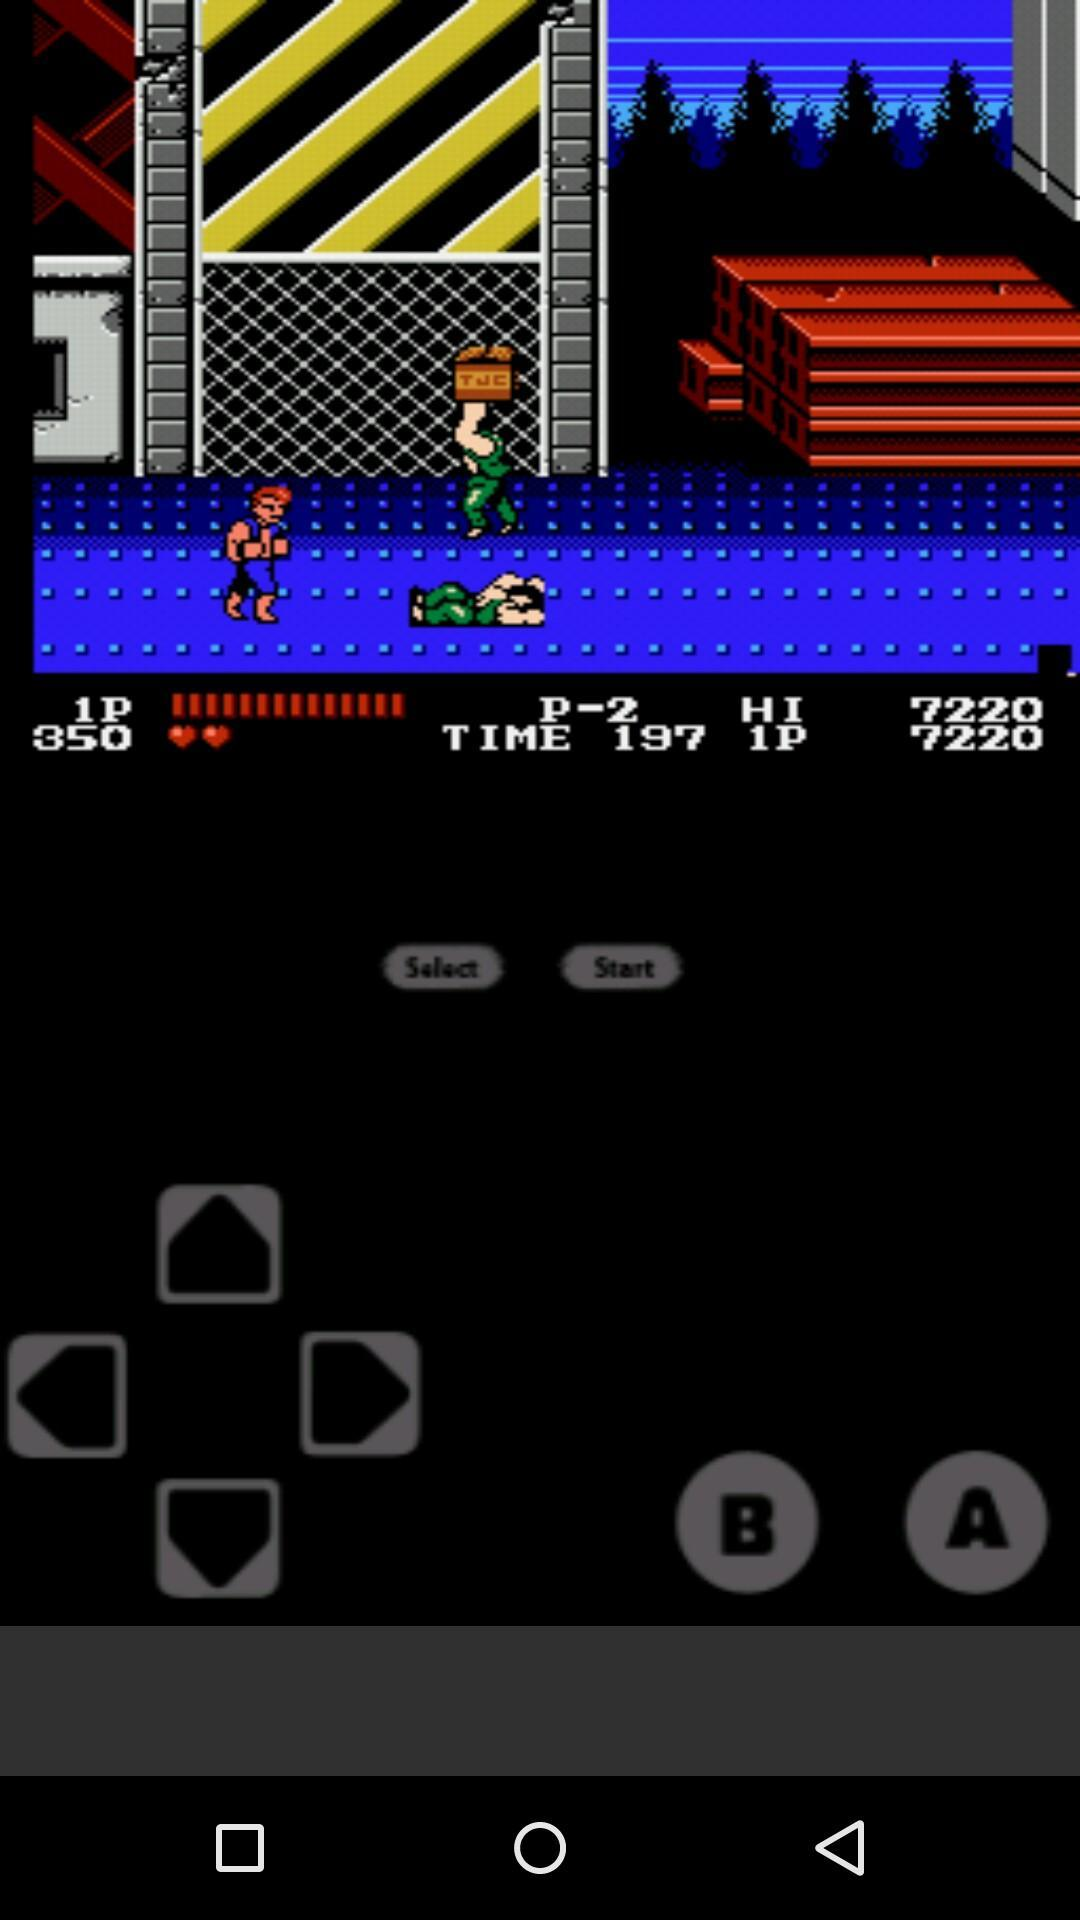 Double Dragon 1 CLASSIC Nes for Android - APK Download